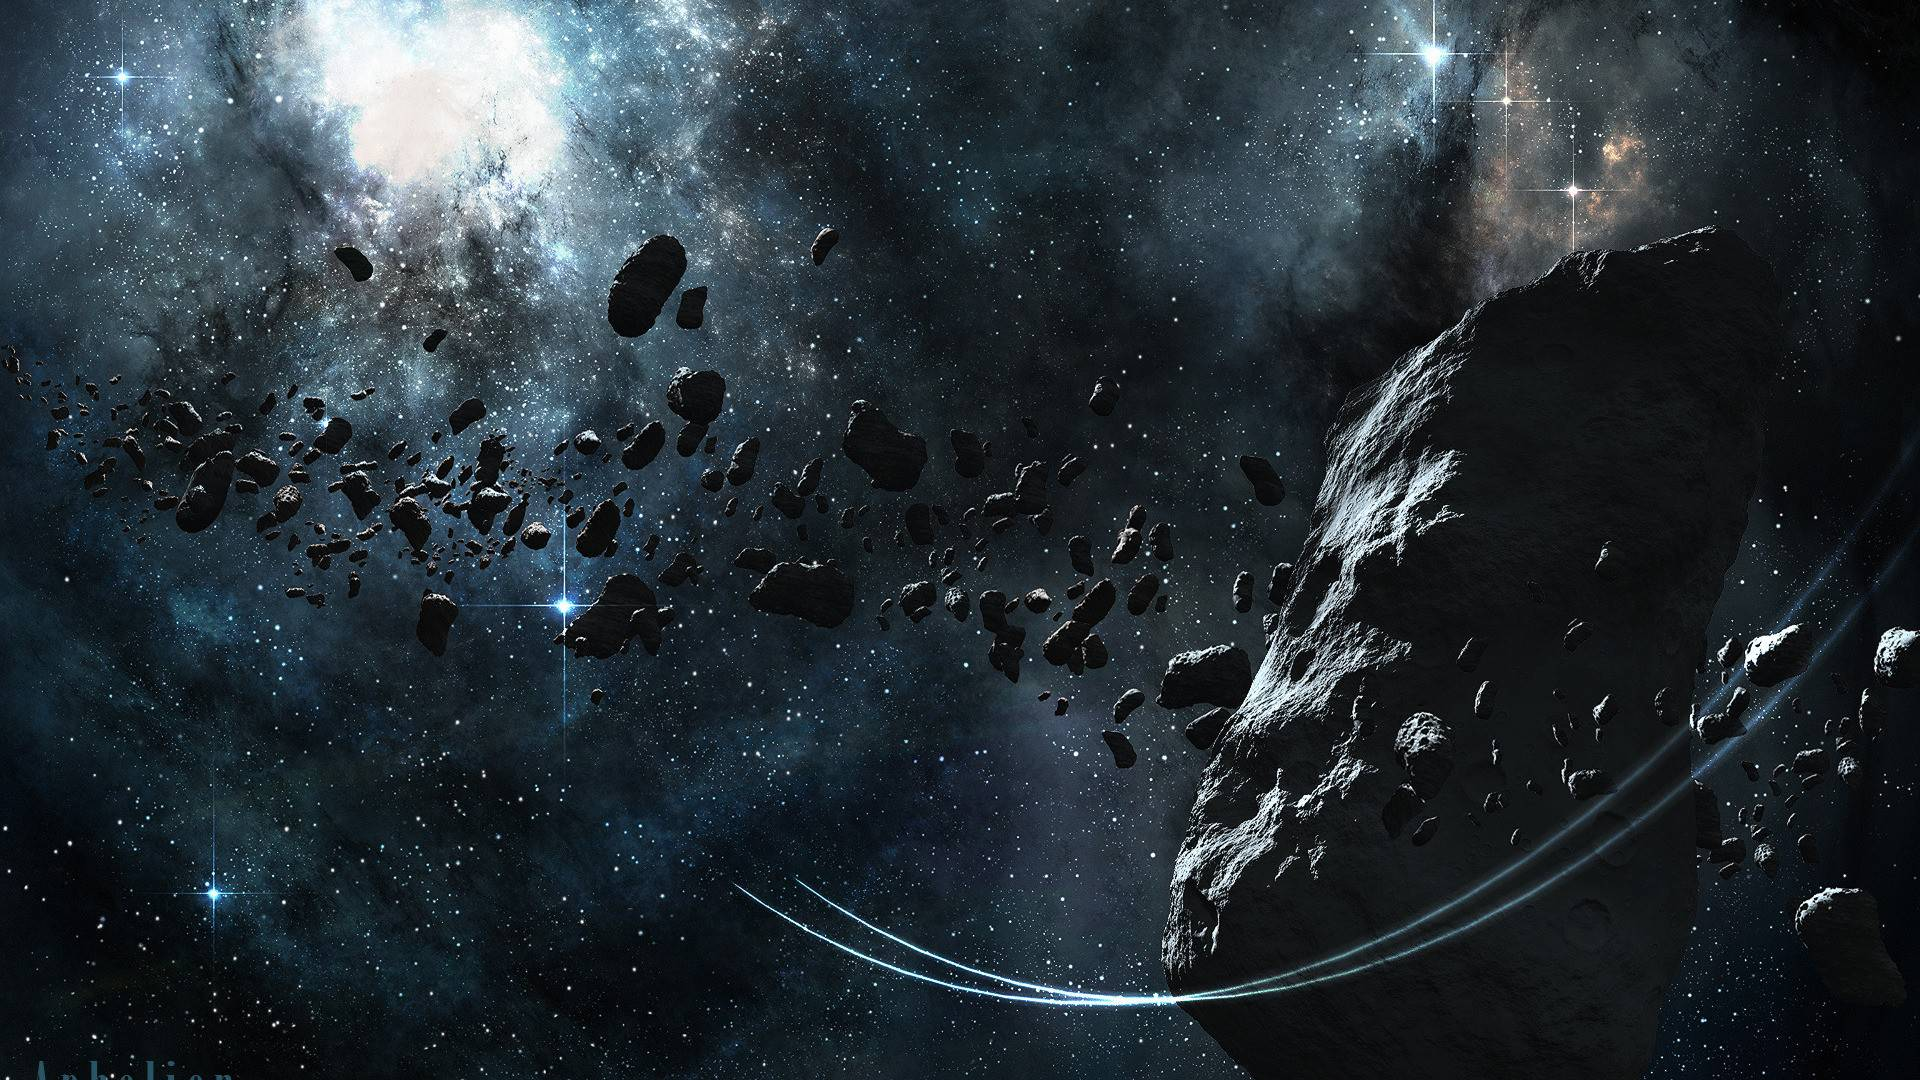 Cool Asteroid Wallpaper